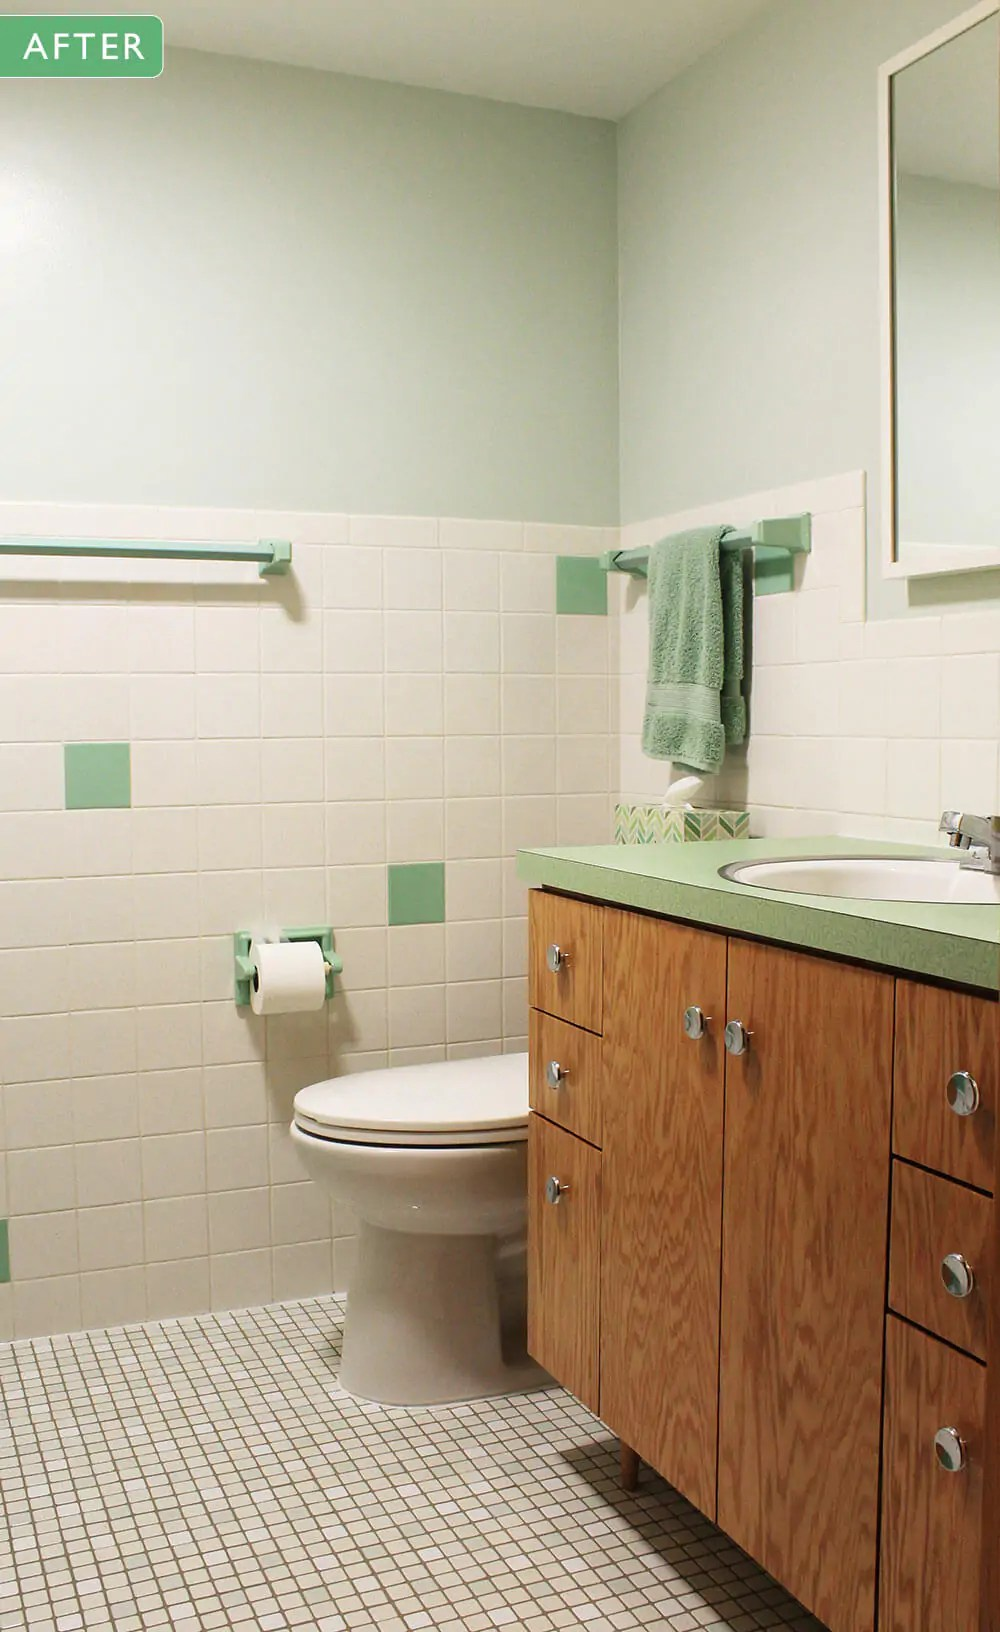 Kates 1960s green bathroom remodel lite  before and